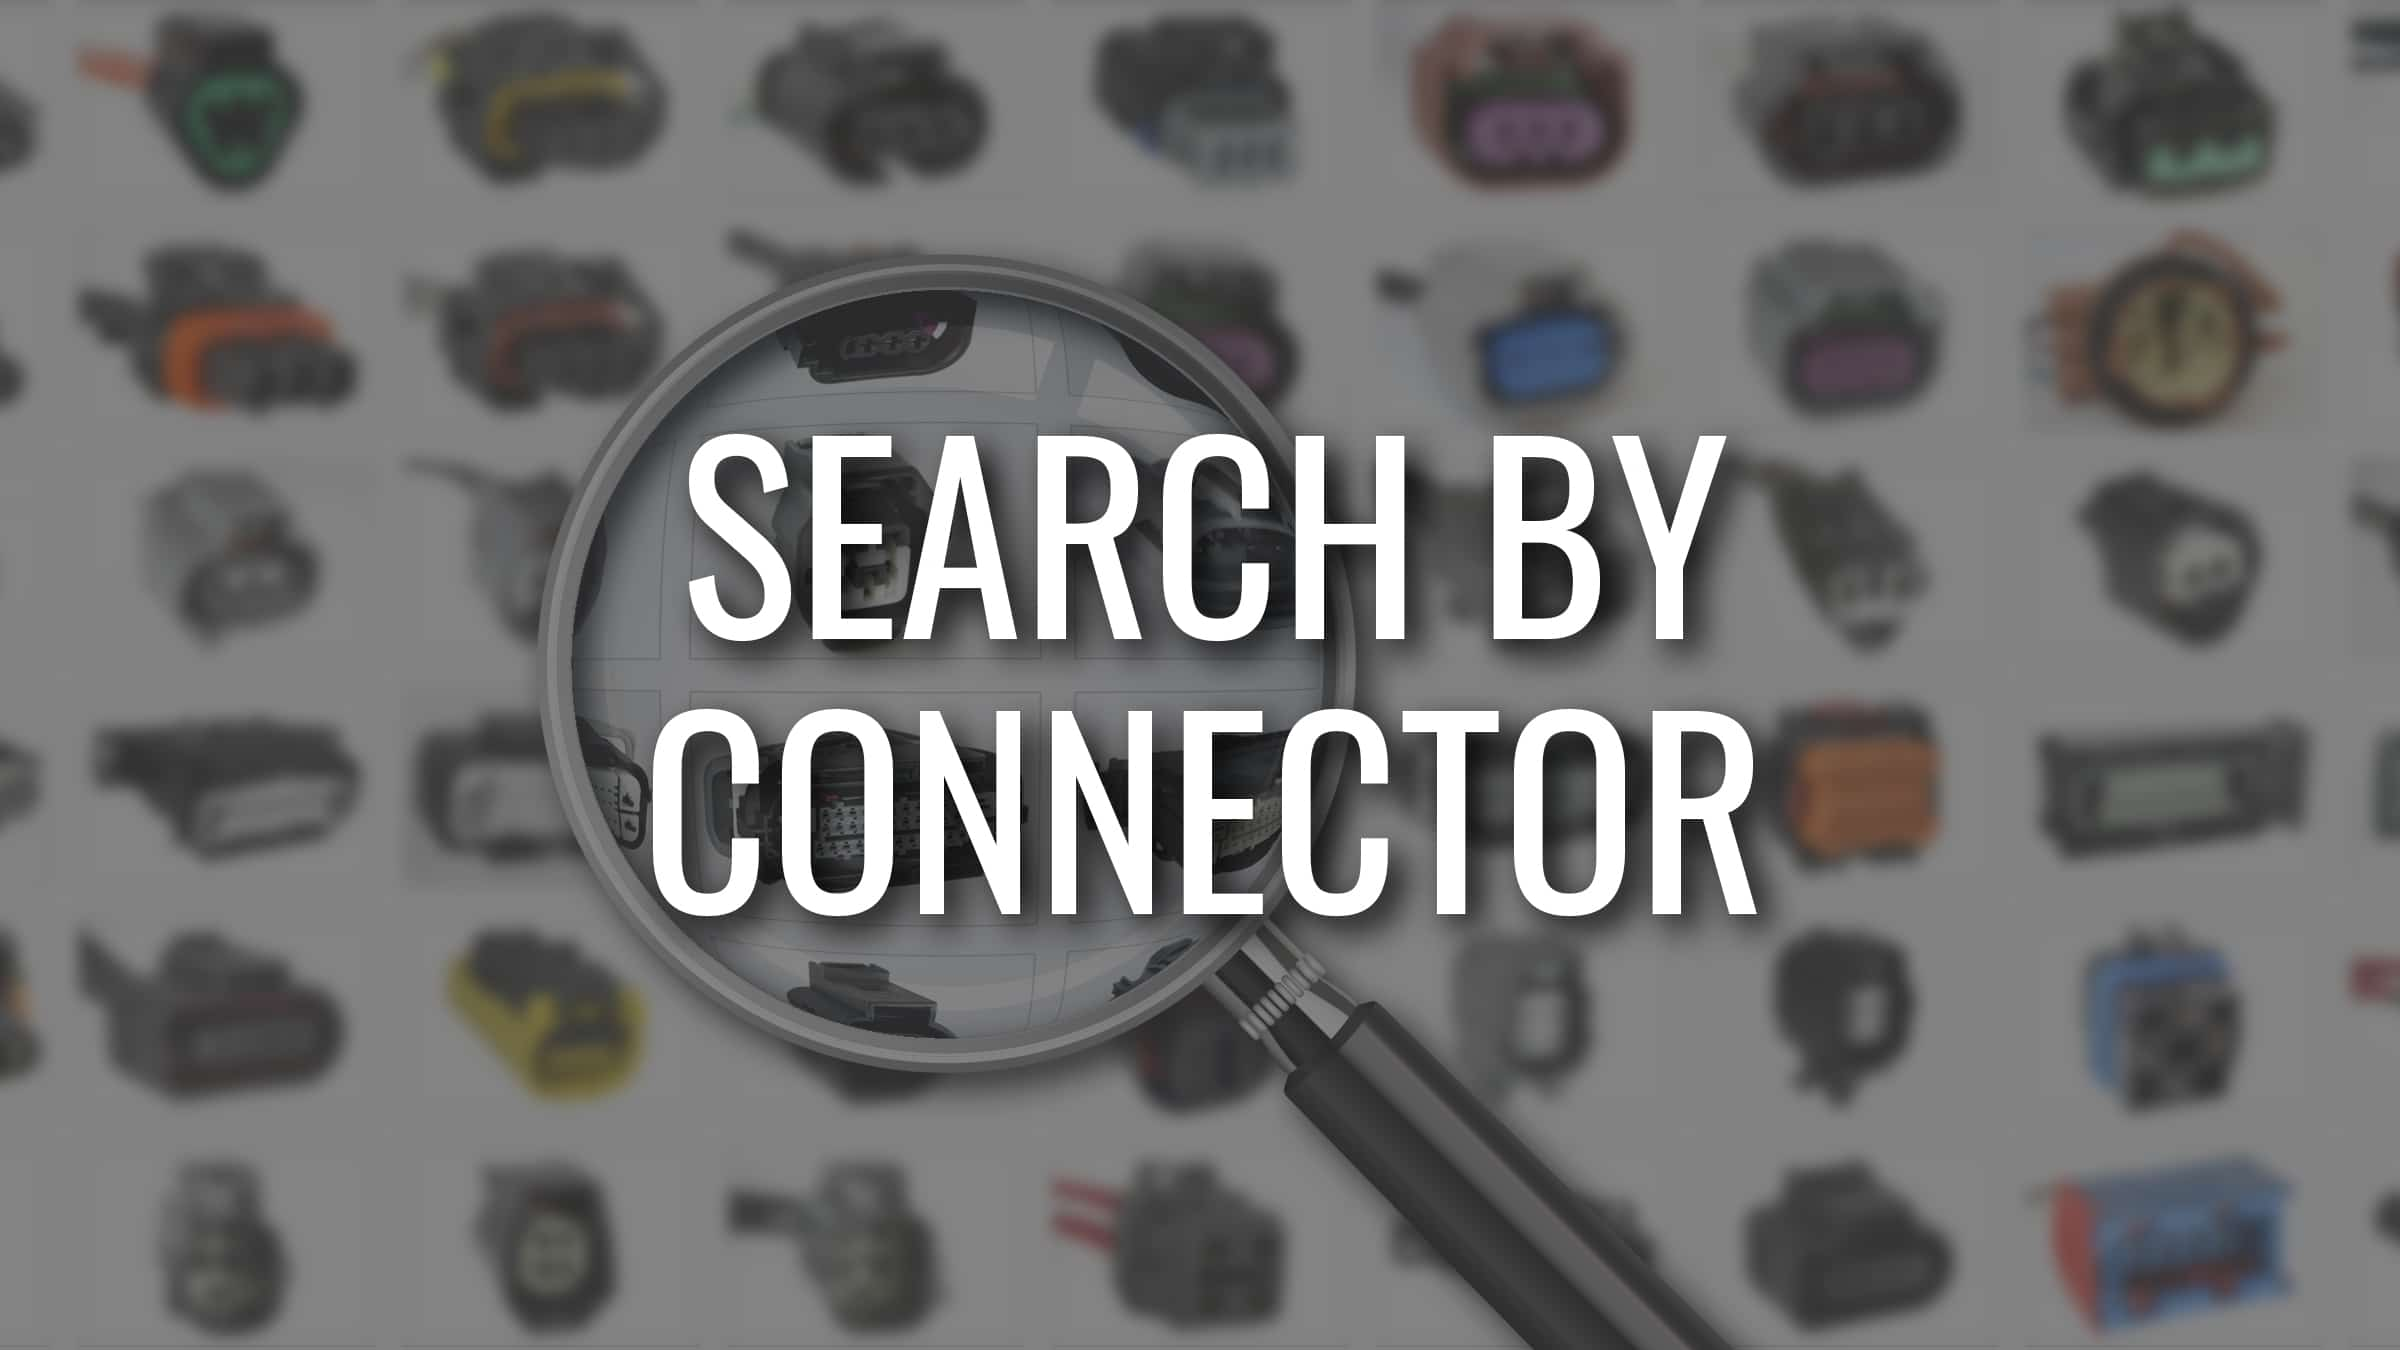 Grid-Search-by-Connector-1.1